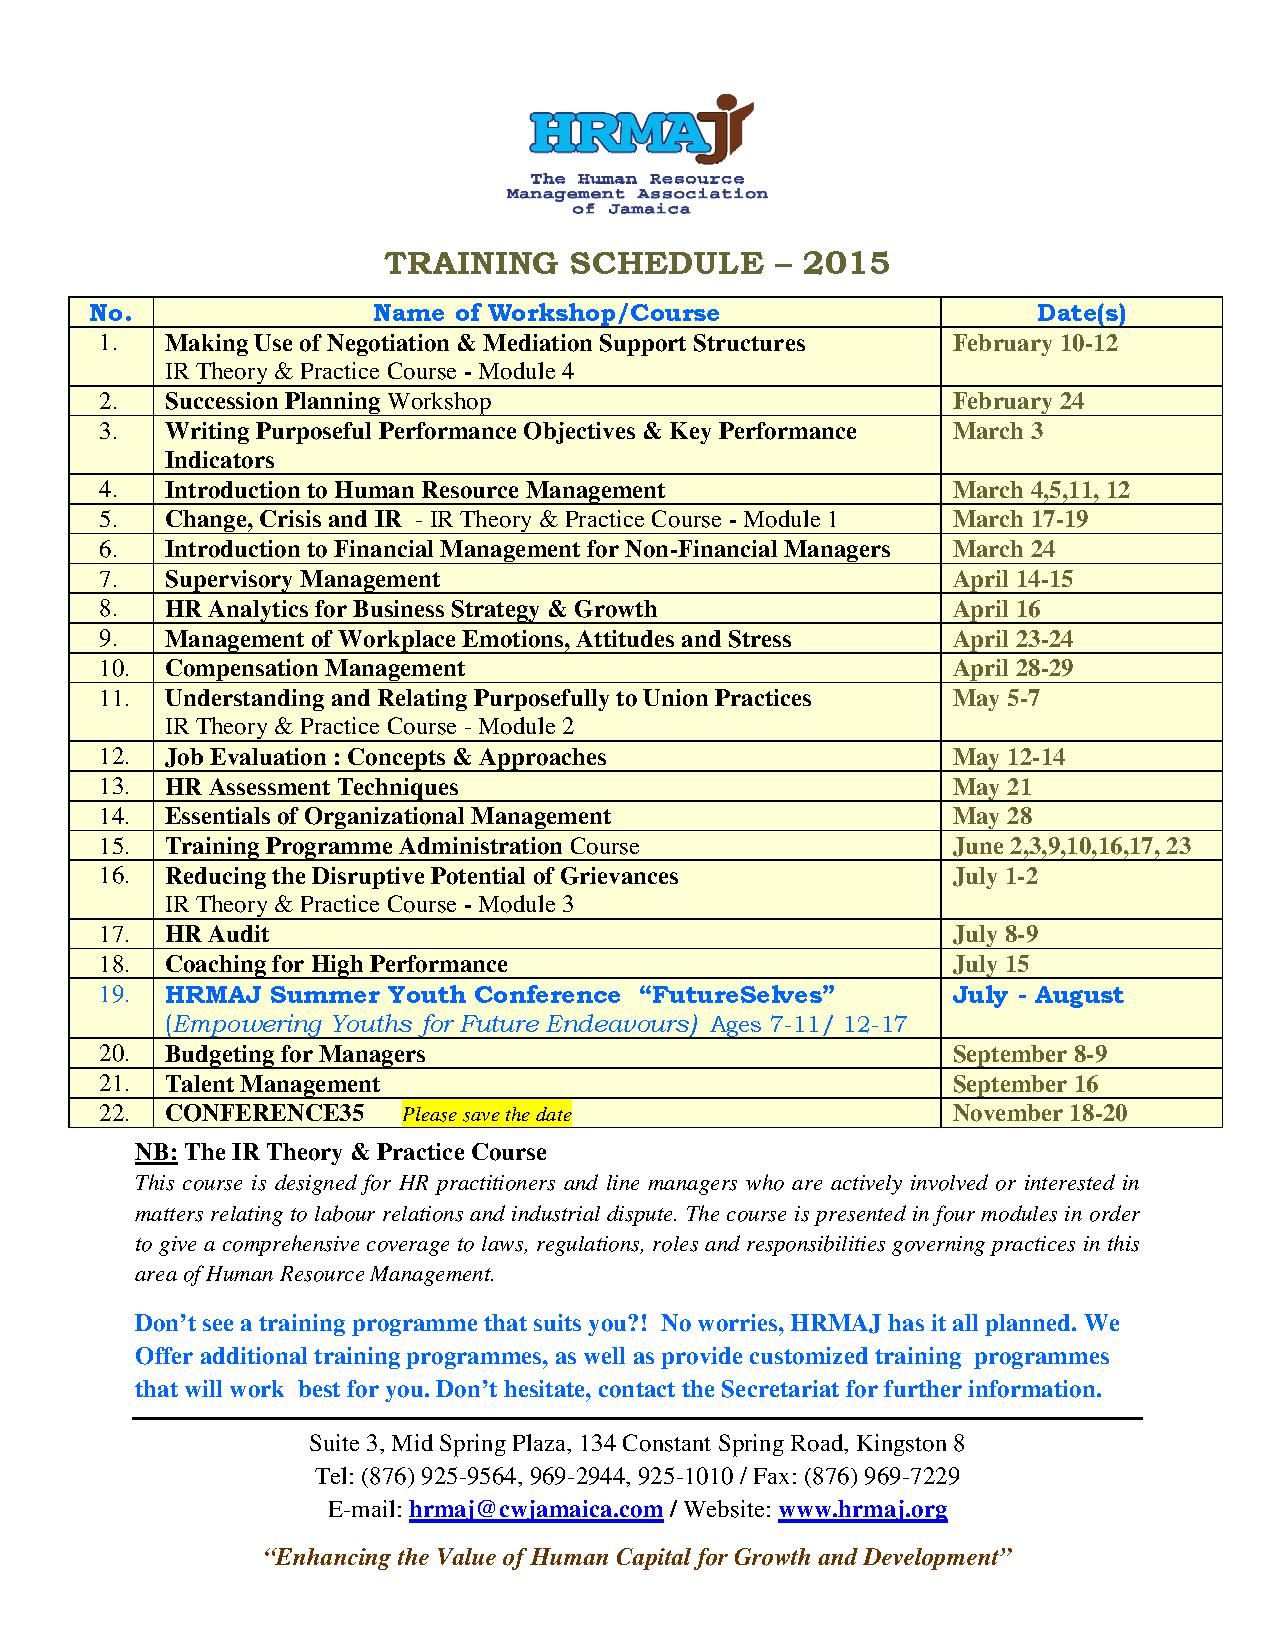 Training Schedule 2015